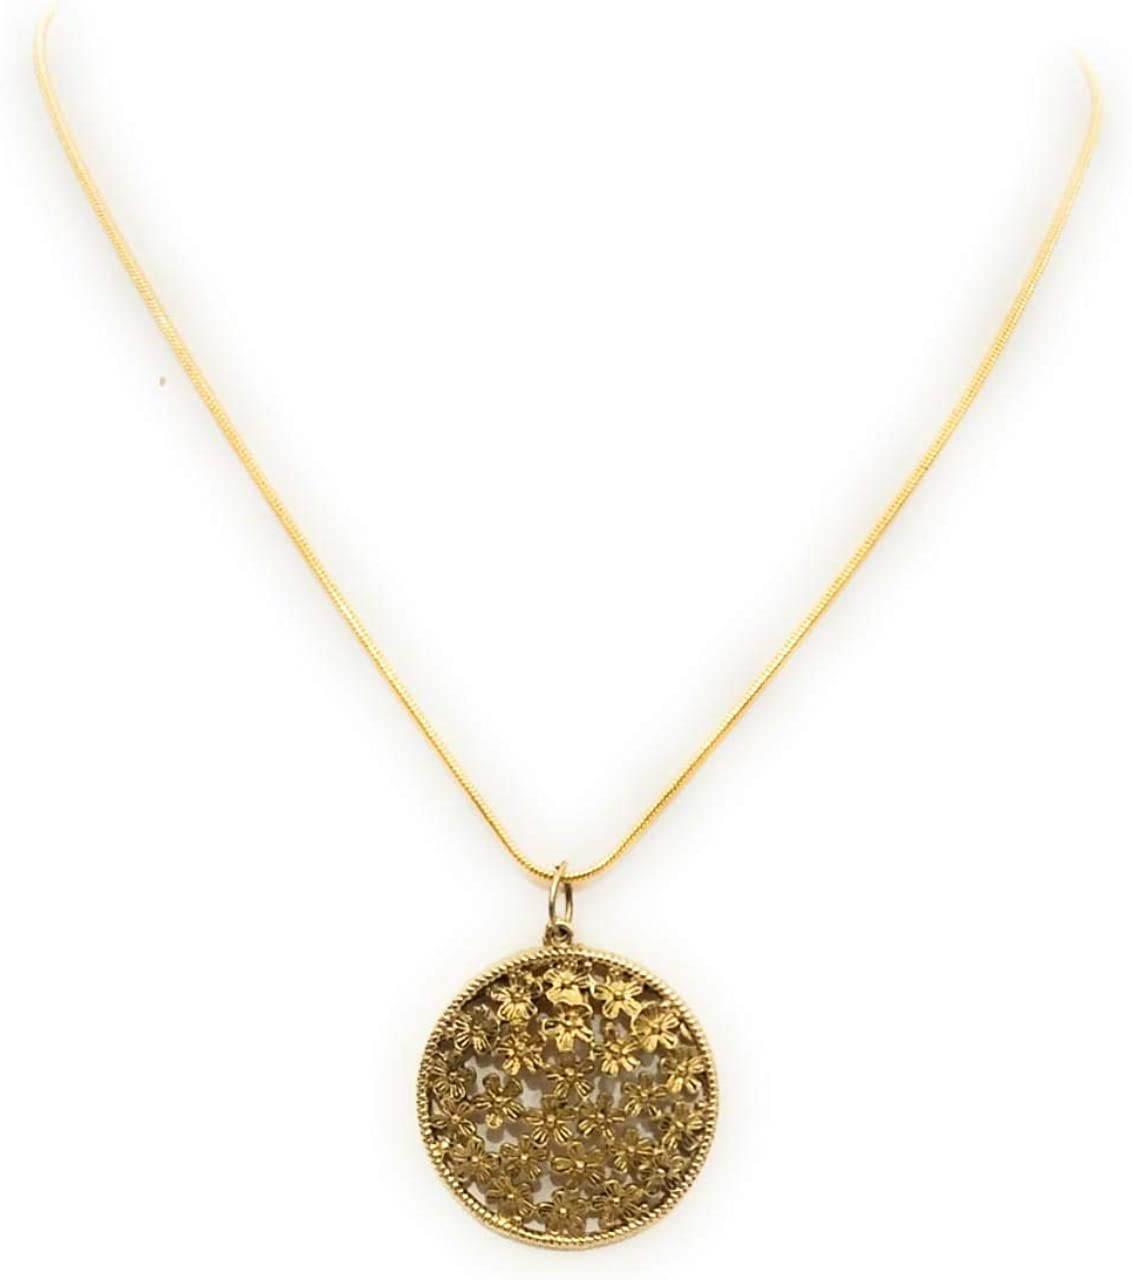 Athizay Pendant Necklace for Women Golden Chain 16 inch Long for Women Fashion Jewelry